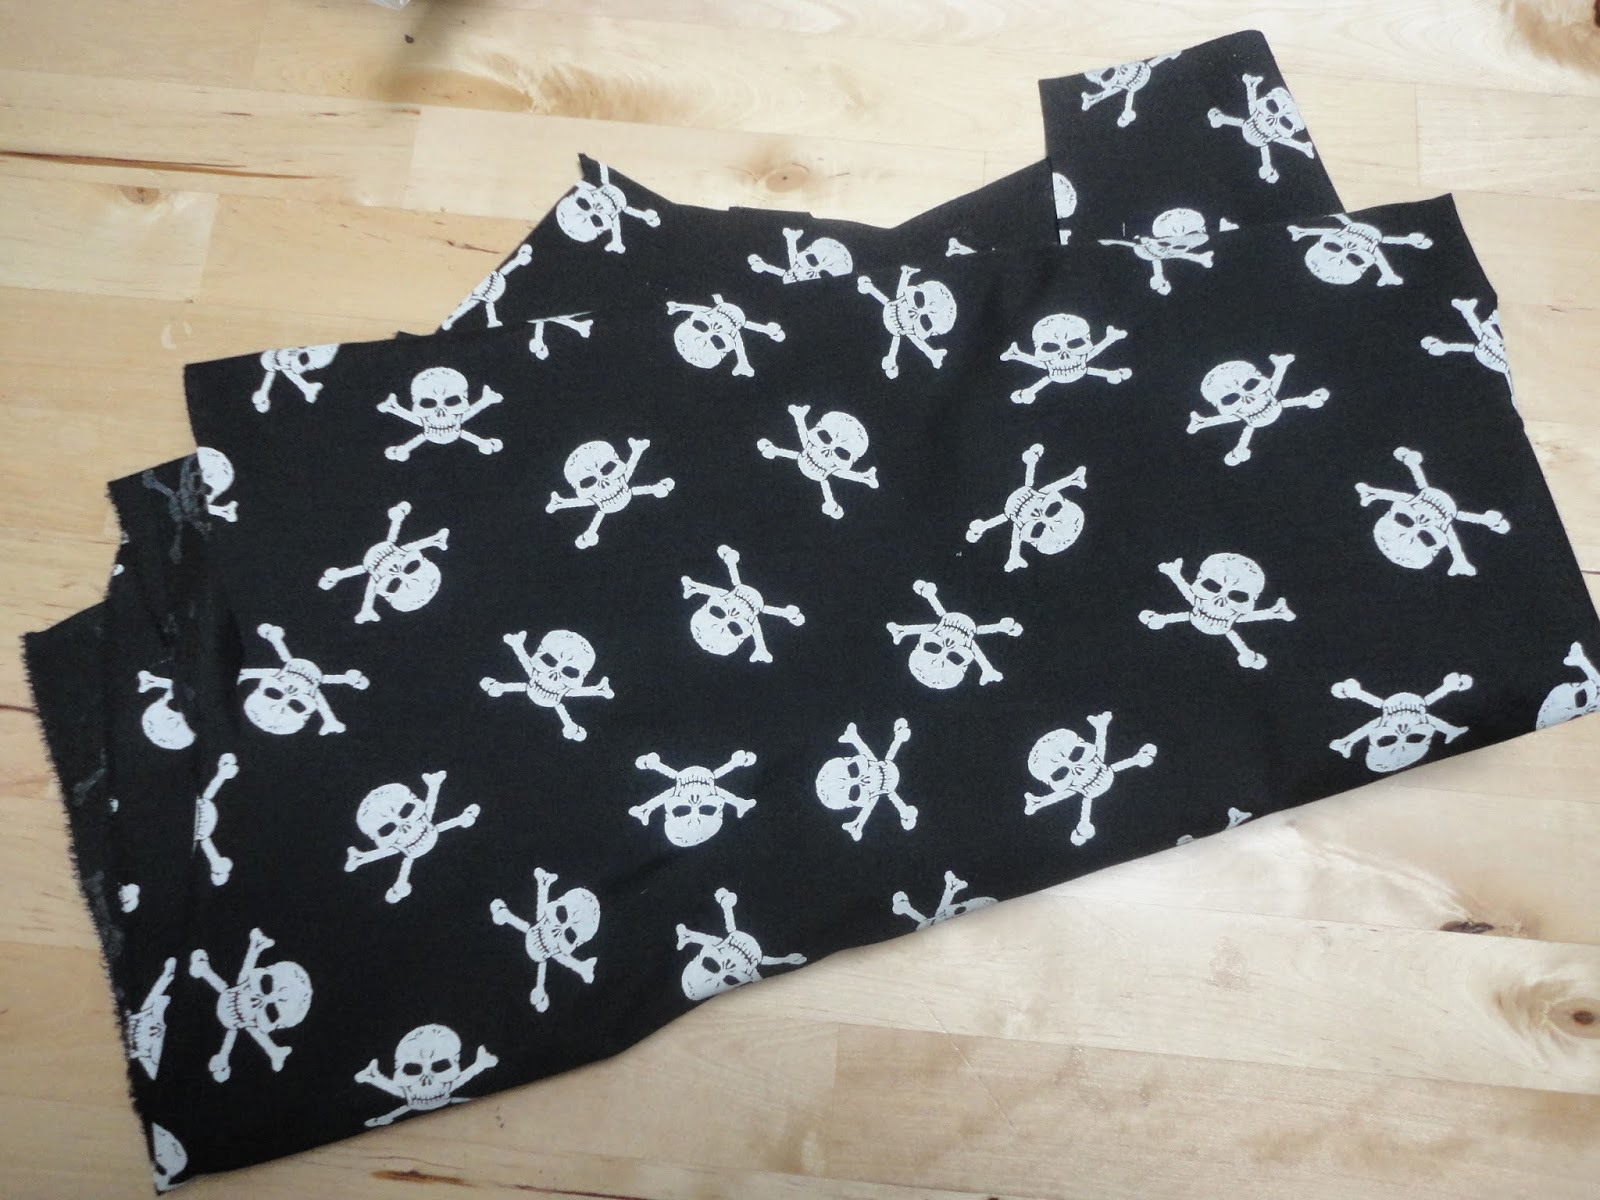 Skull and Crossbones fabric from Minerva Crafts